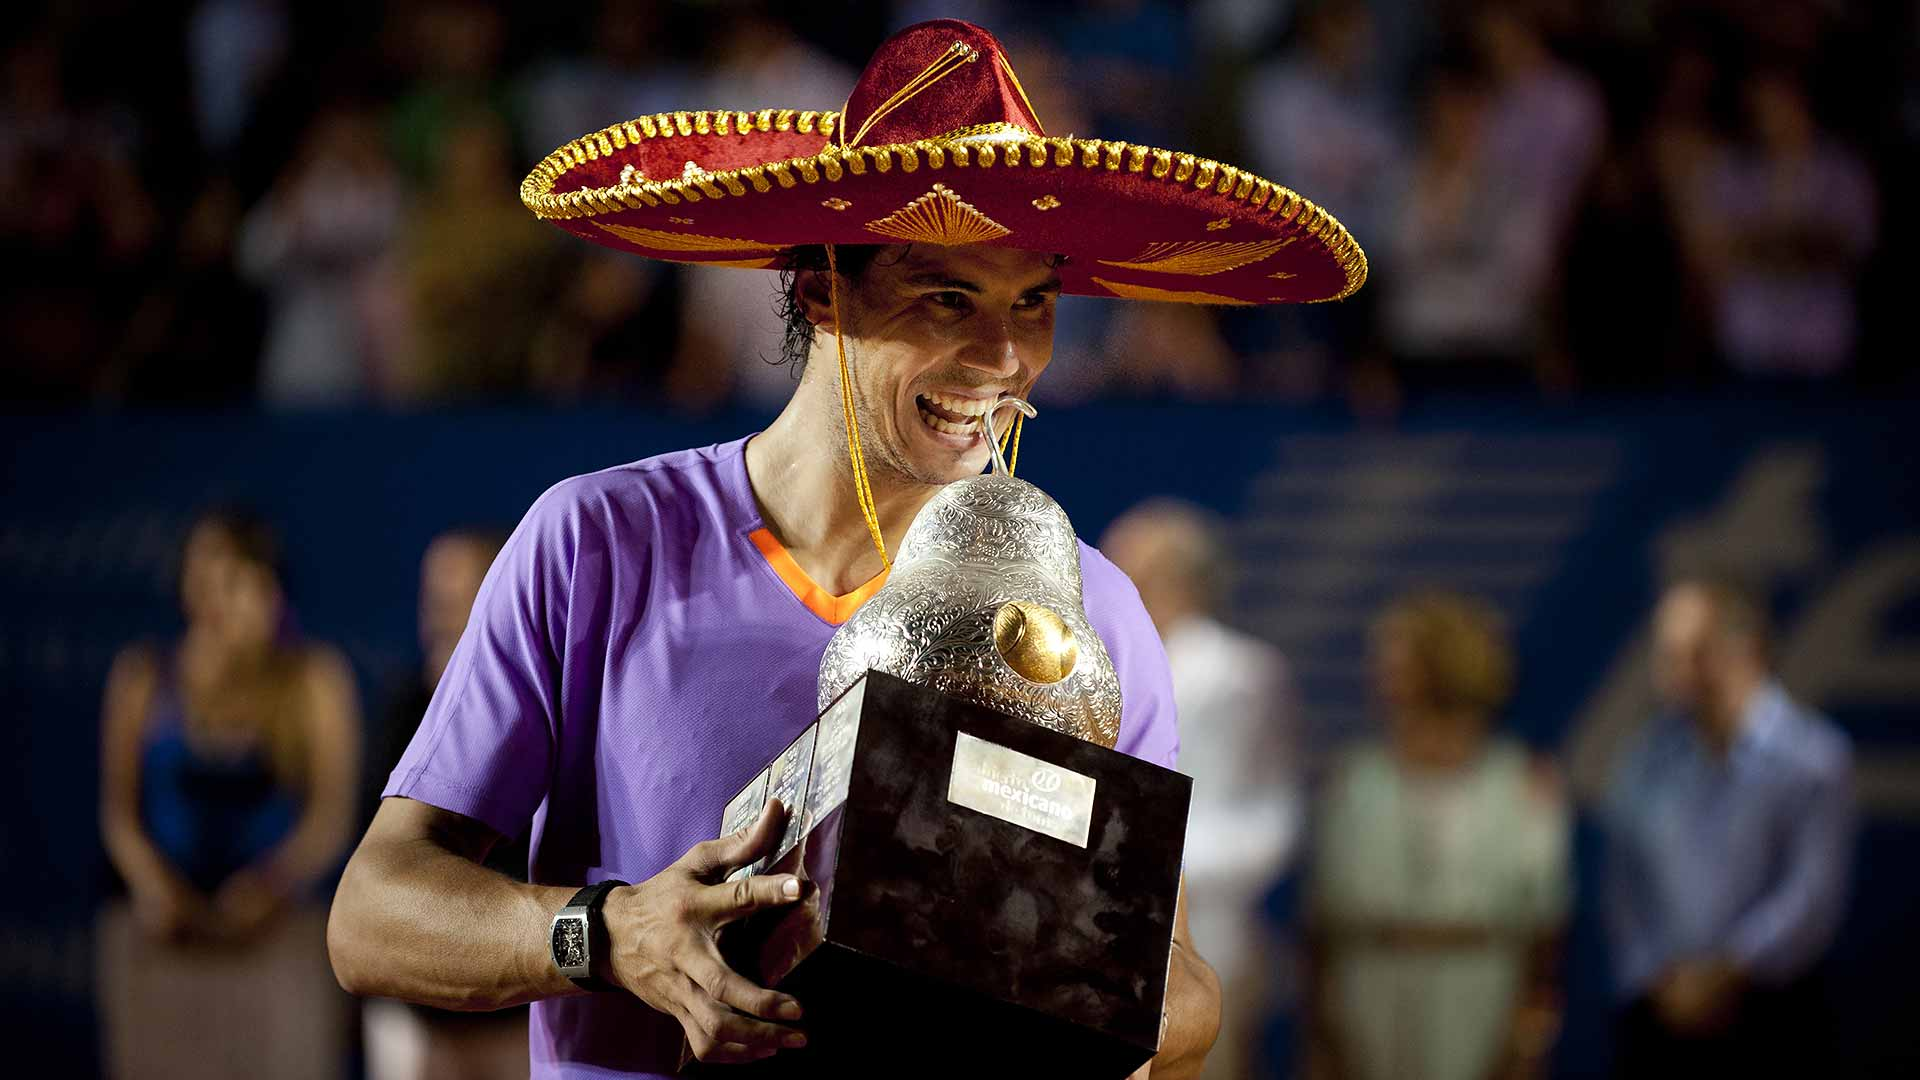 Rafael Nadal celebrates his second Acapulco trophy after defeating countryman David Ferrer in the 2013 final.